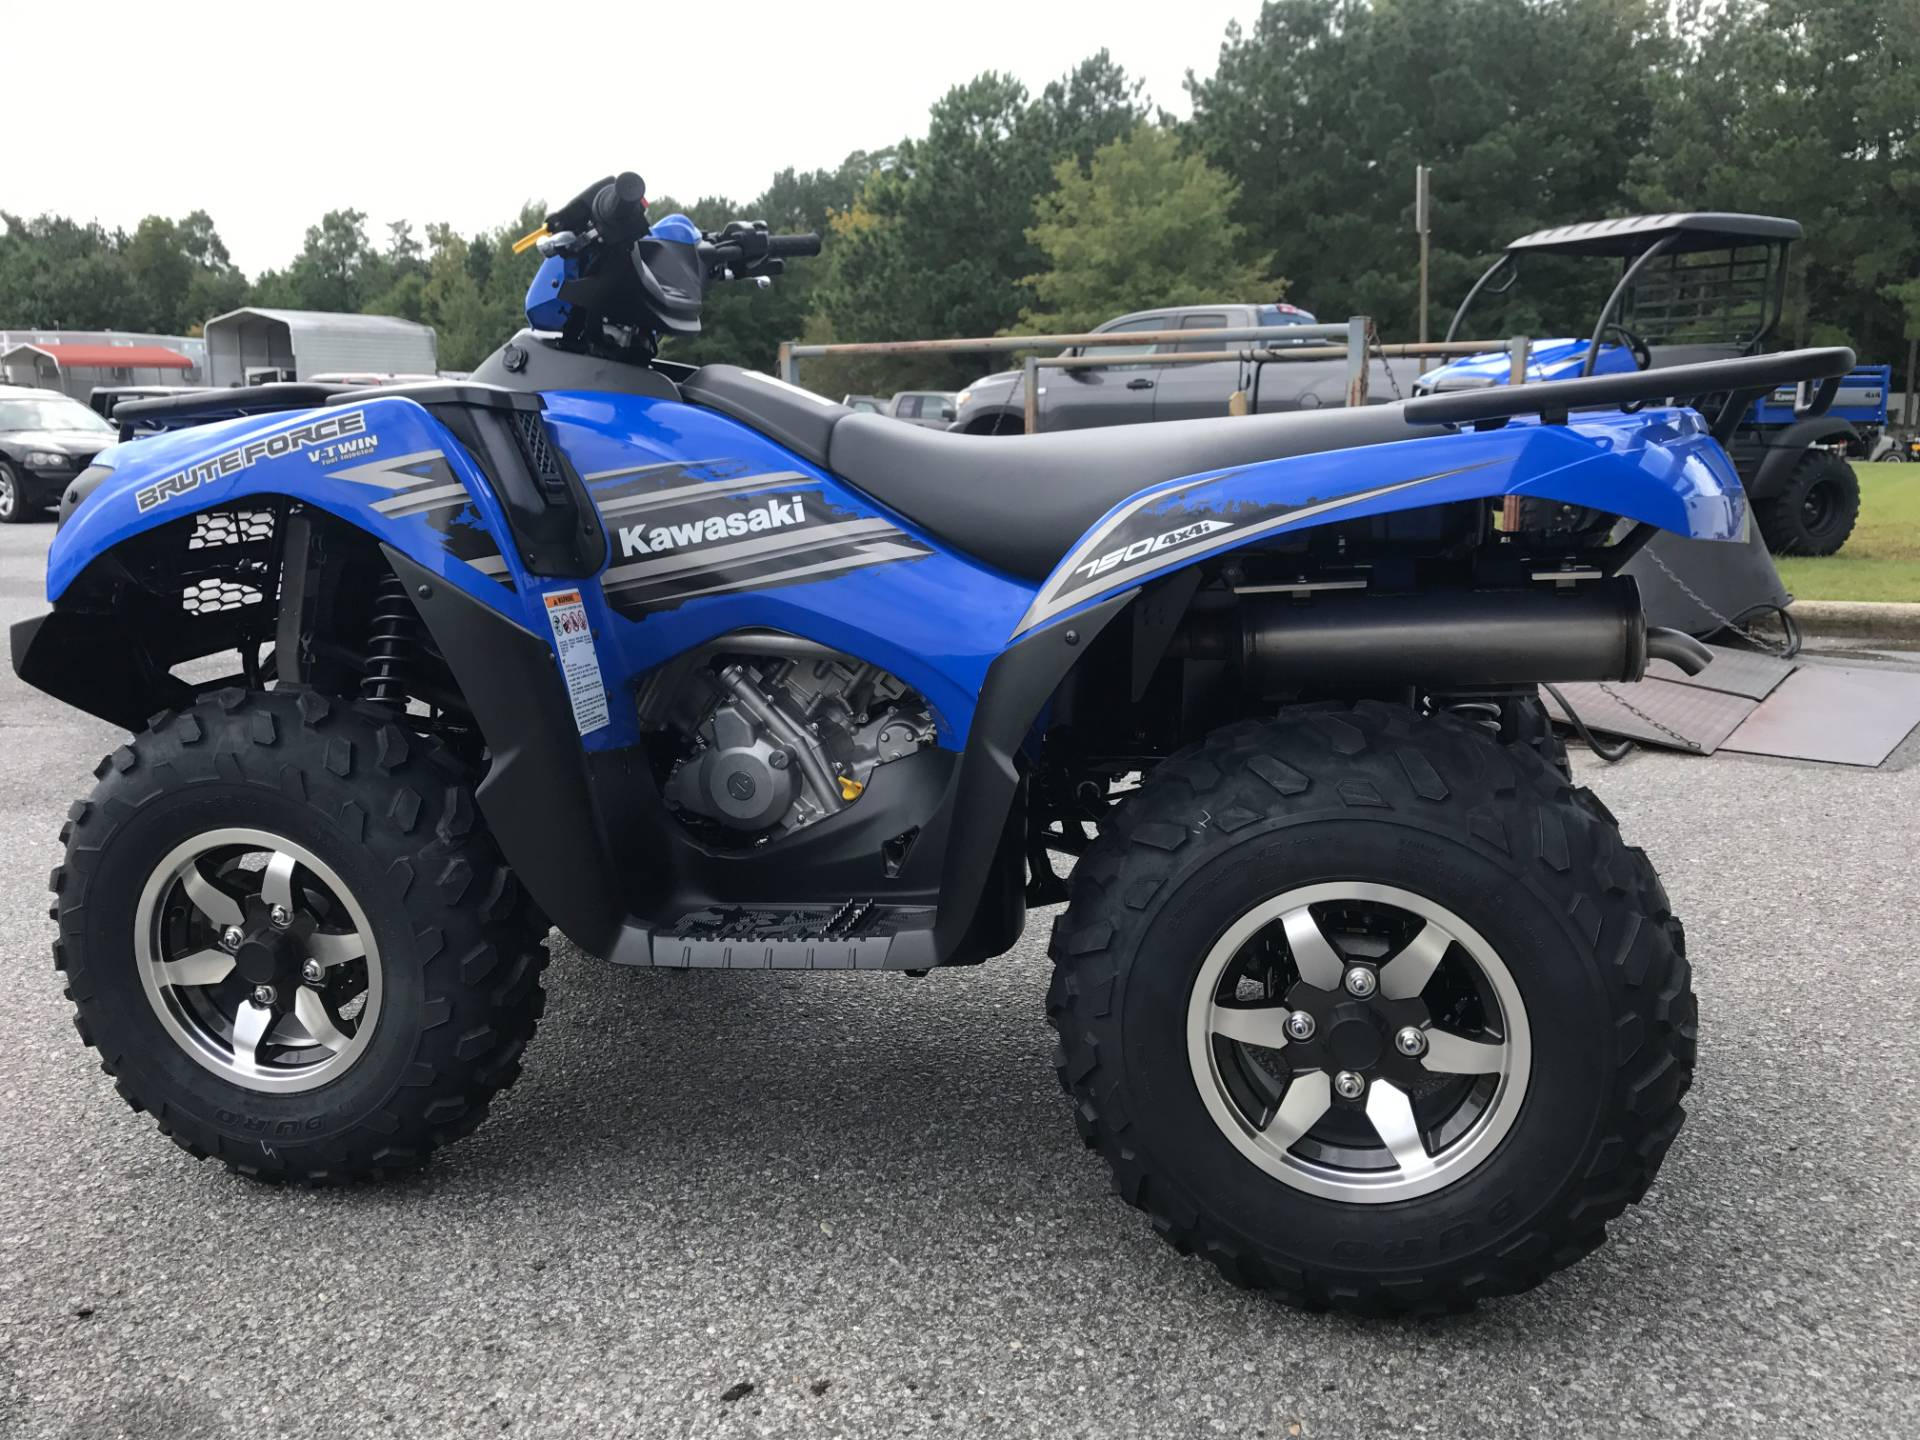 2018 Kawasaki Brute Force 750 4x4i EPS in Greenville, North Carolina - Photo 8